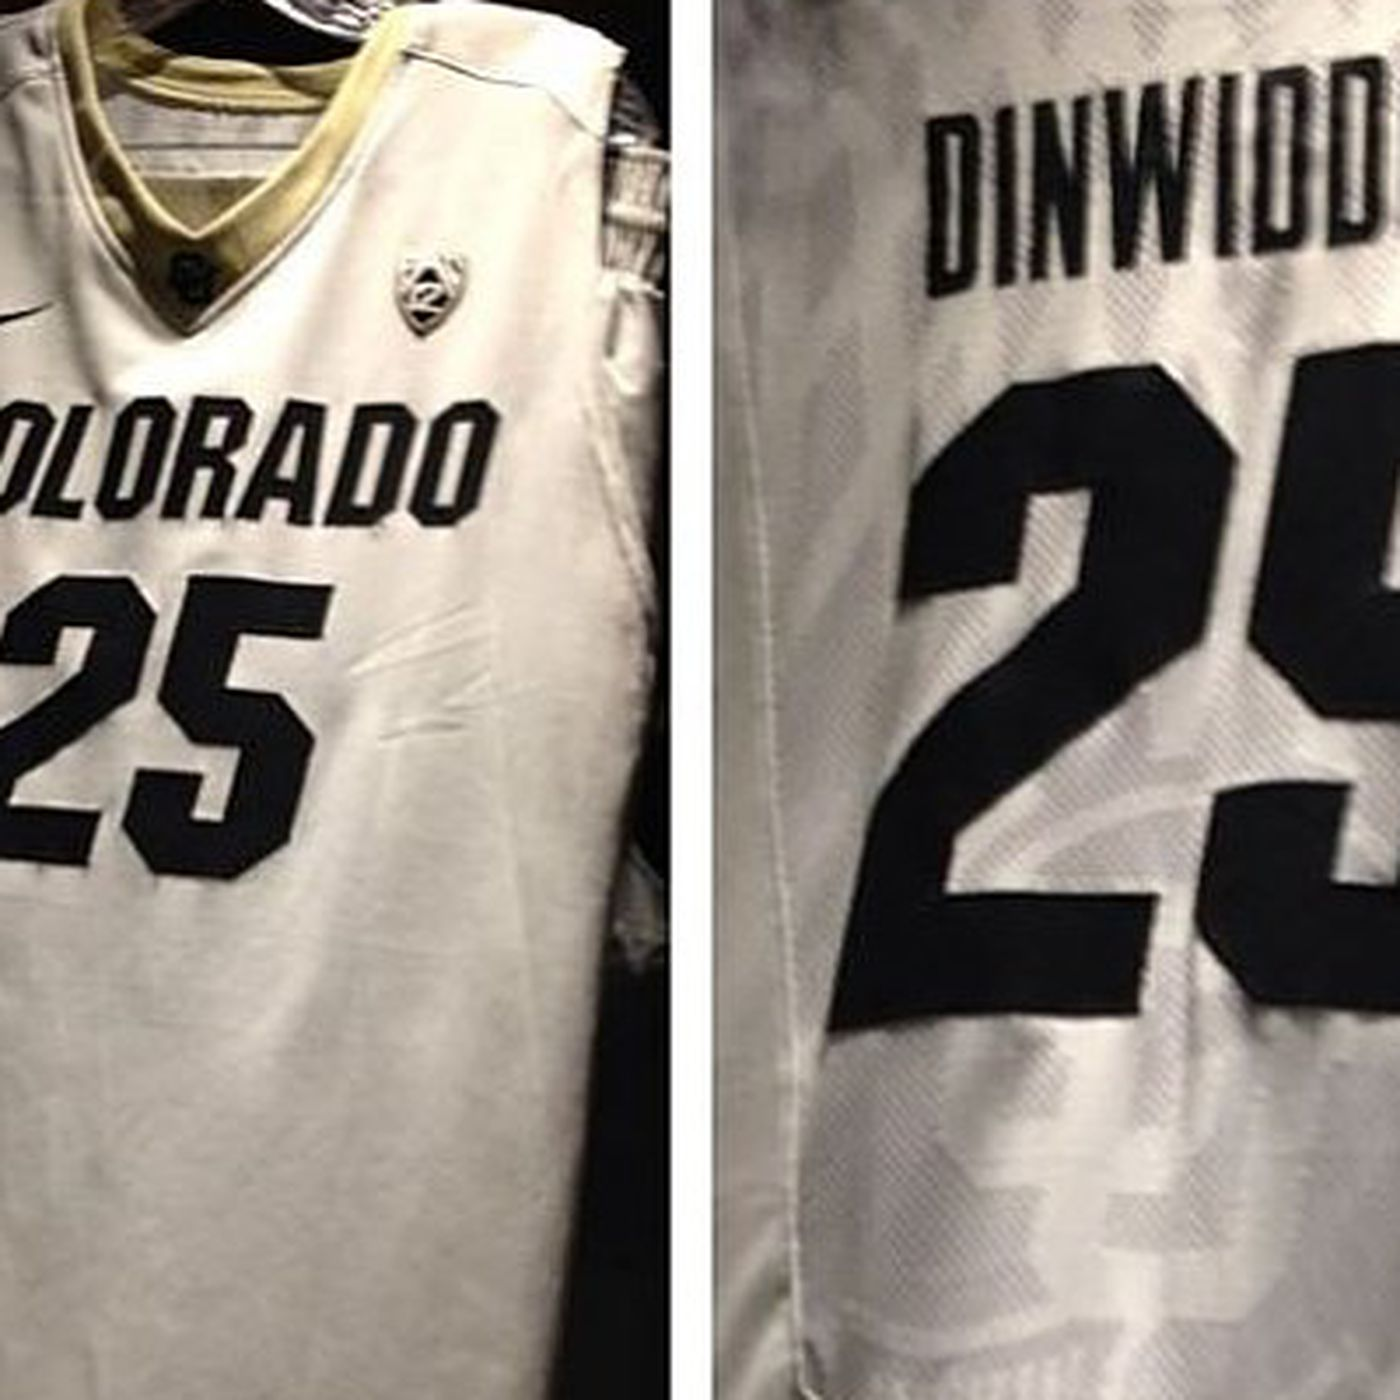 a18a743d0222 Nike Has Deemed Colorado To Be Hyper Elite - The Ralphie Report